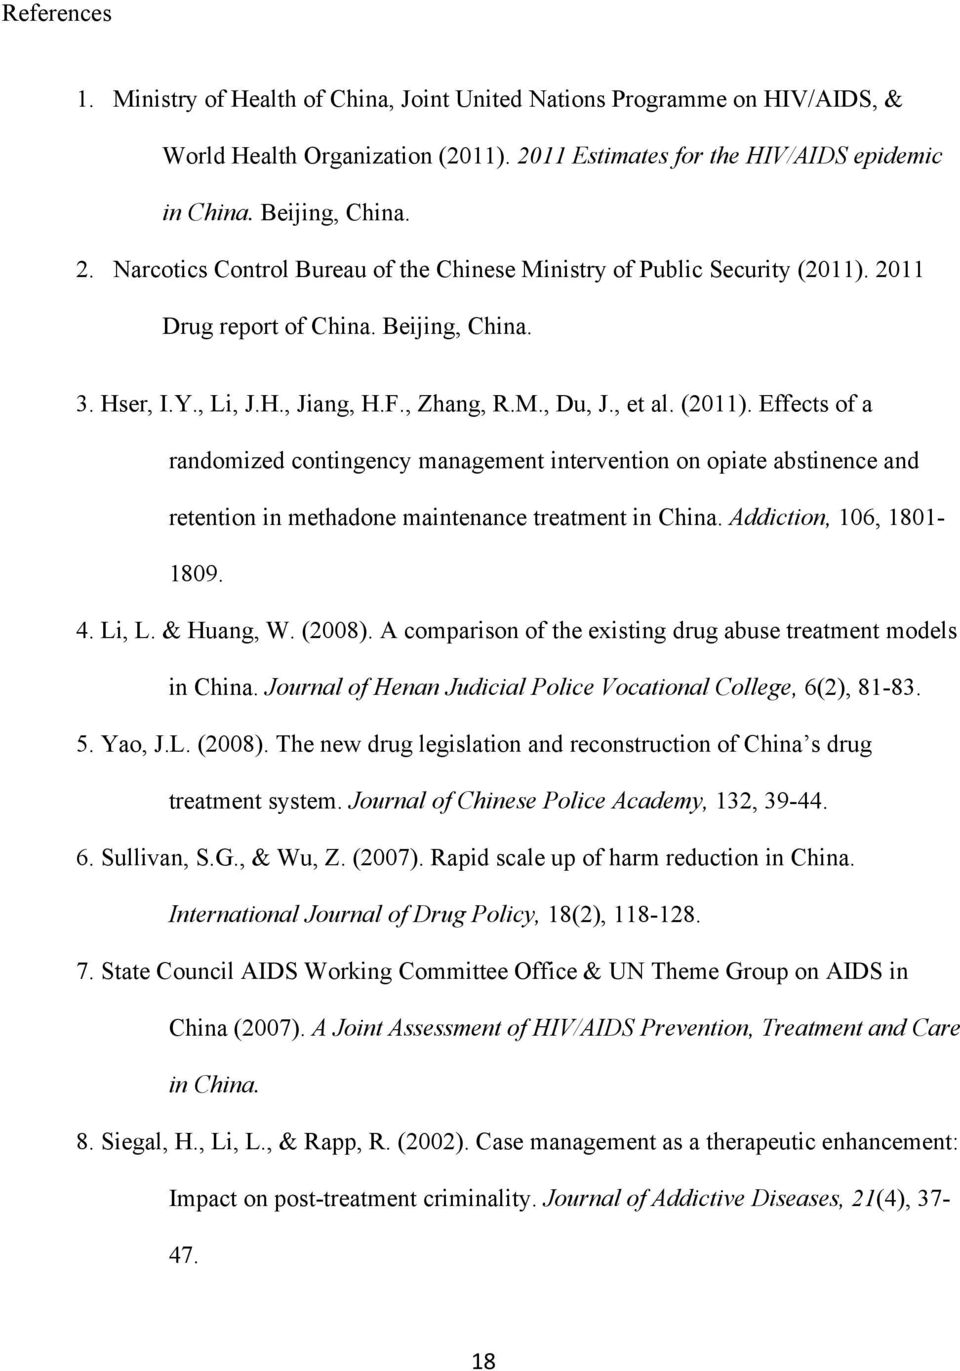 , Li, J.H., Jiang, H.F., Zhang, R.M., Du, J., et al. (2011). Effects of a randomized contingency management intervention on opiate abstinence and retention in methadone maintenance treatment in China.